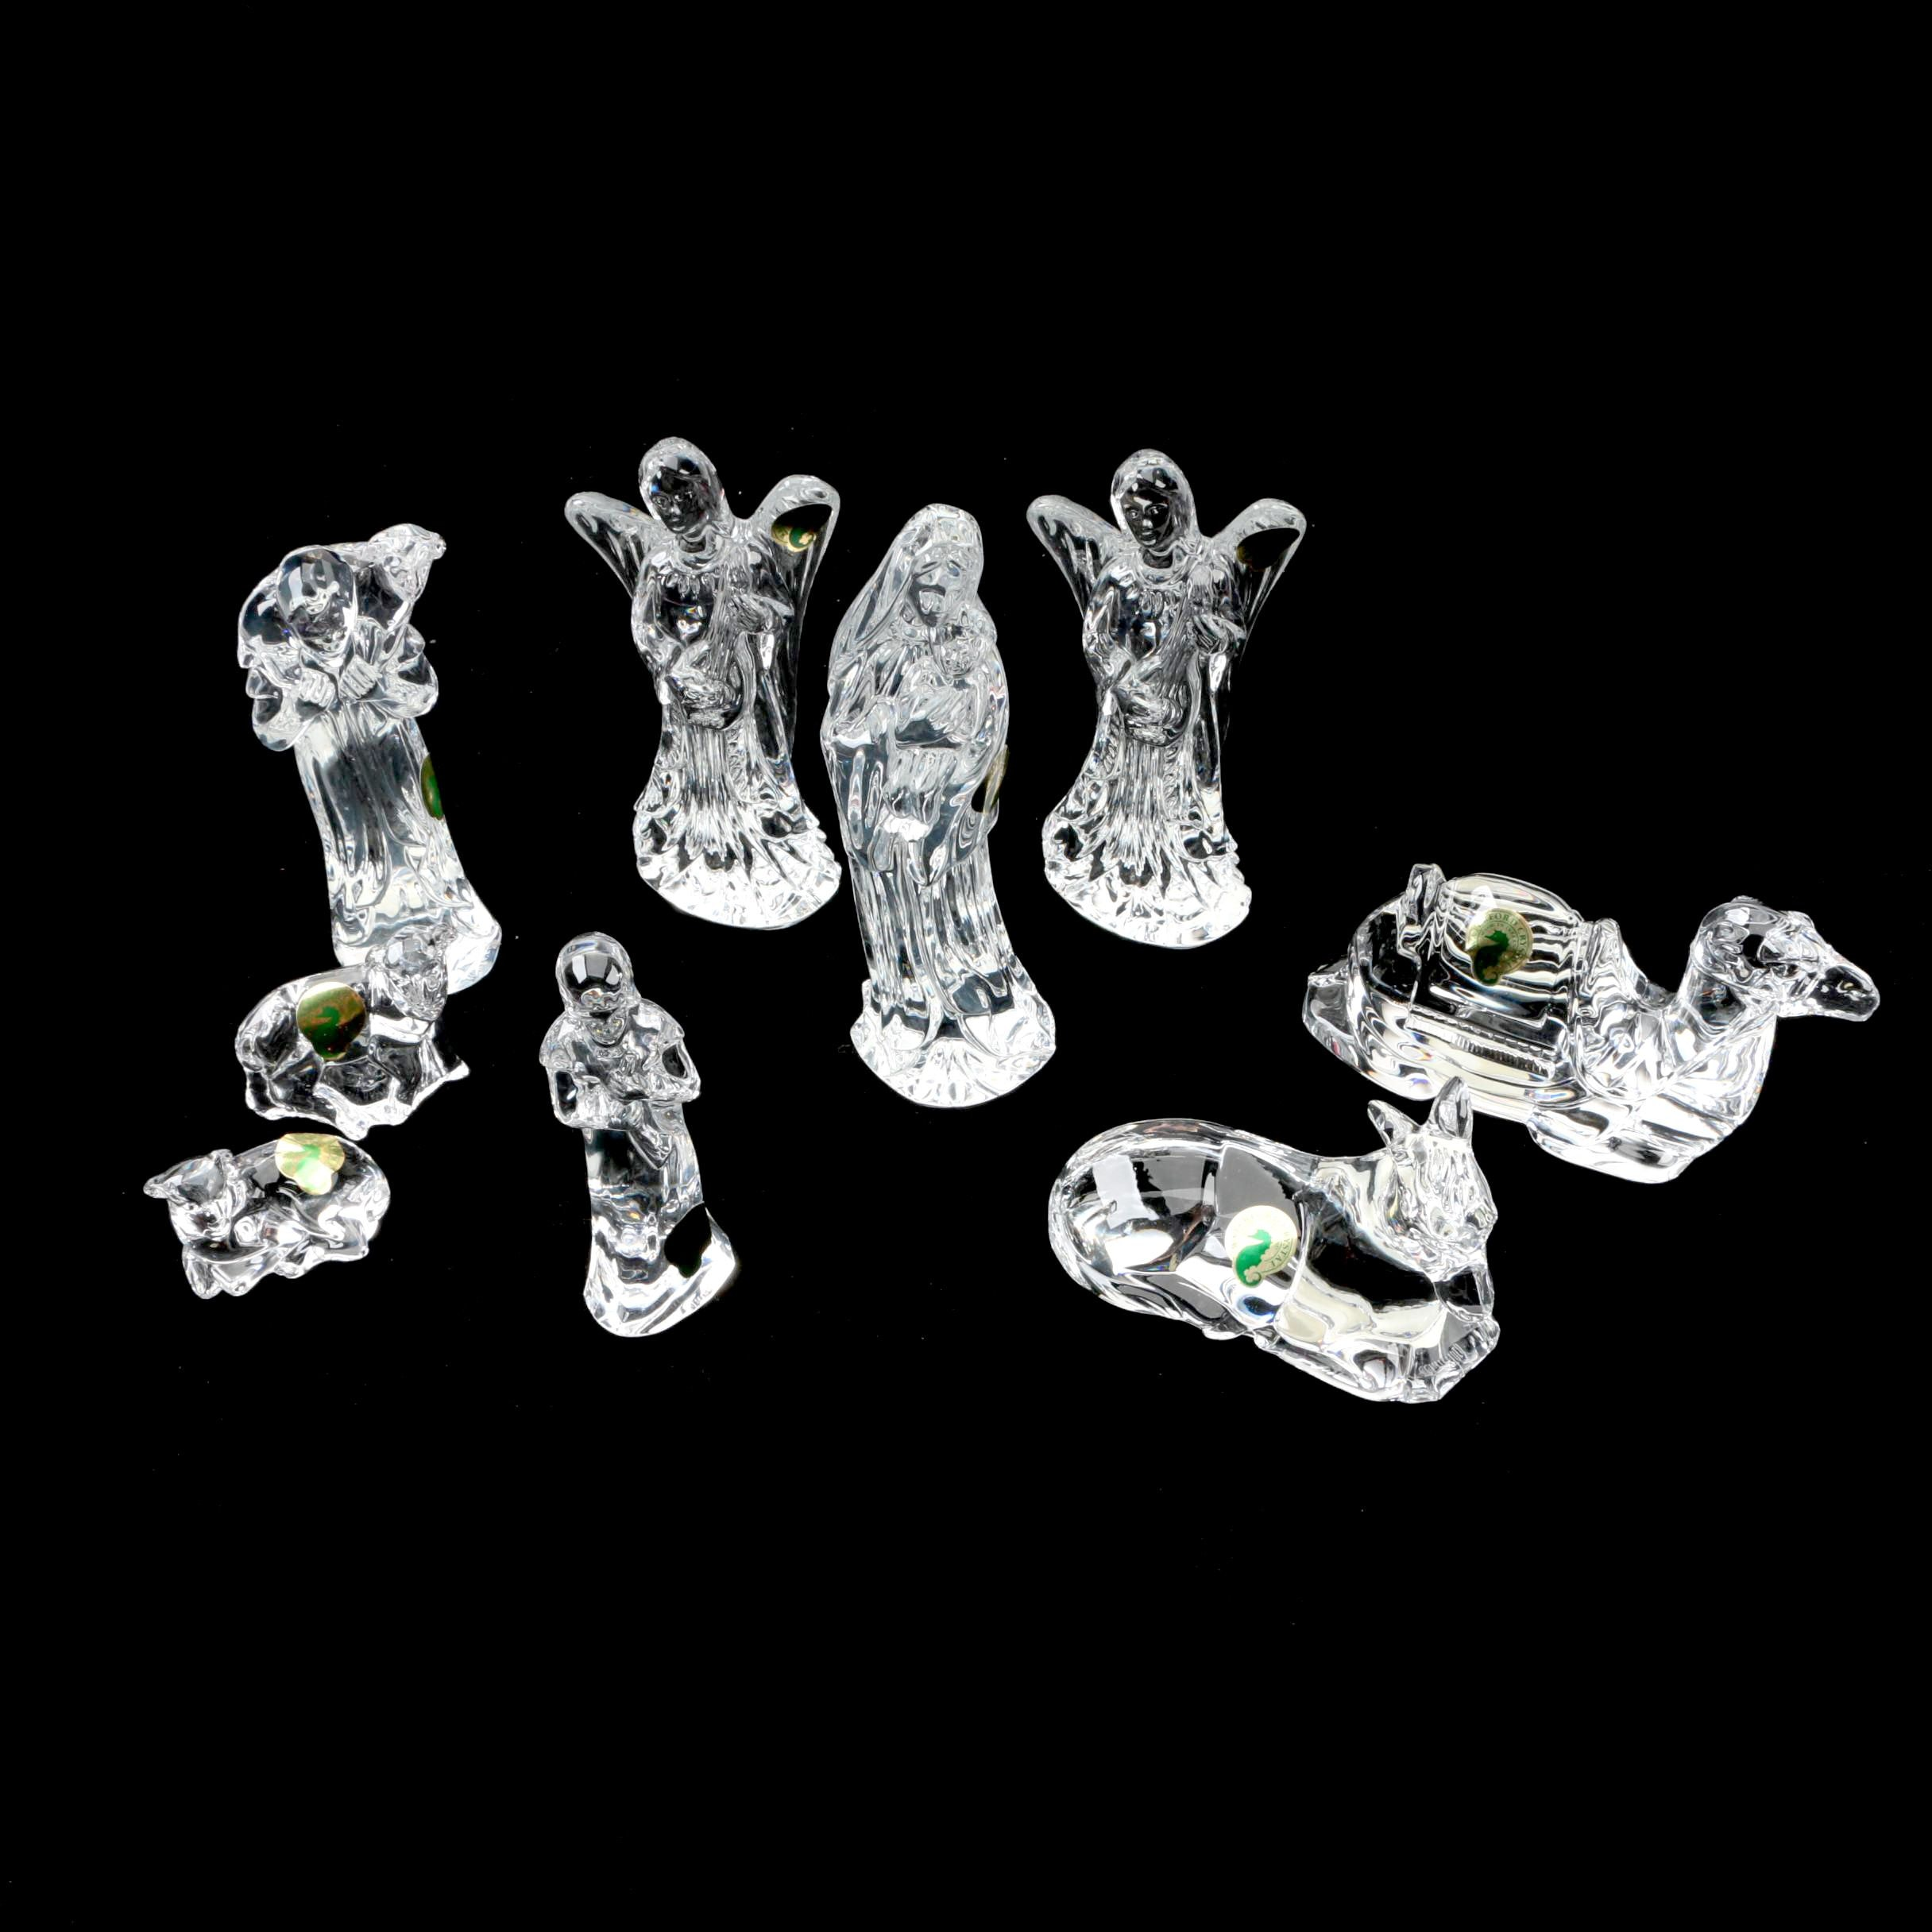 Crystal Nativity Figurines Featuring Waterford